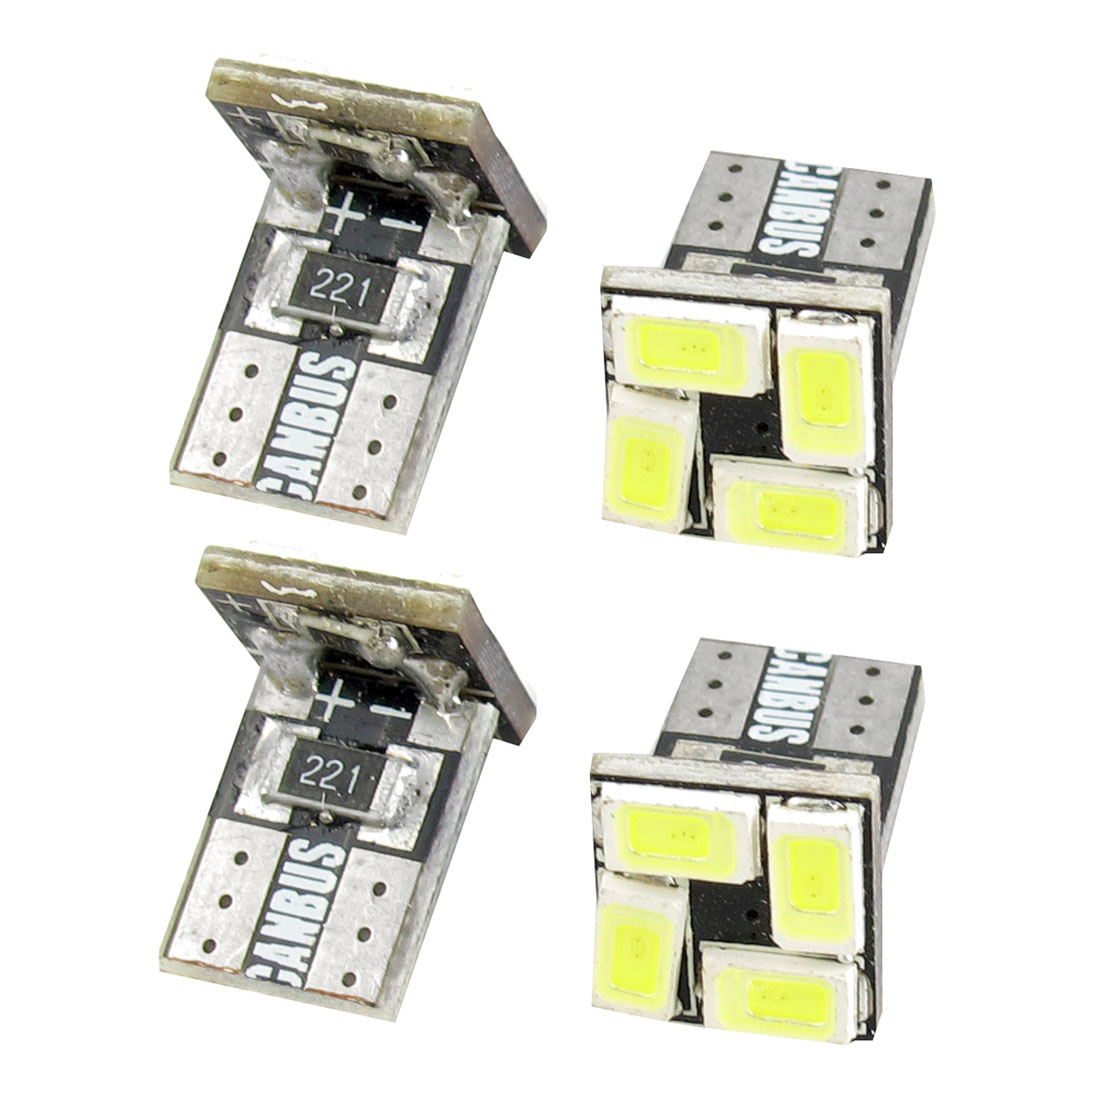 4 Pcs T10 W5W Canbus White 5630 SMD 4 LED Car Dashboard Light Lamp Internal